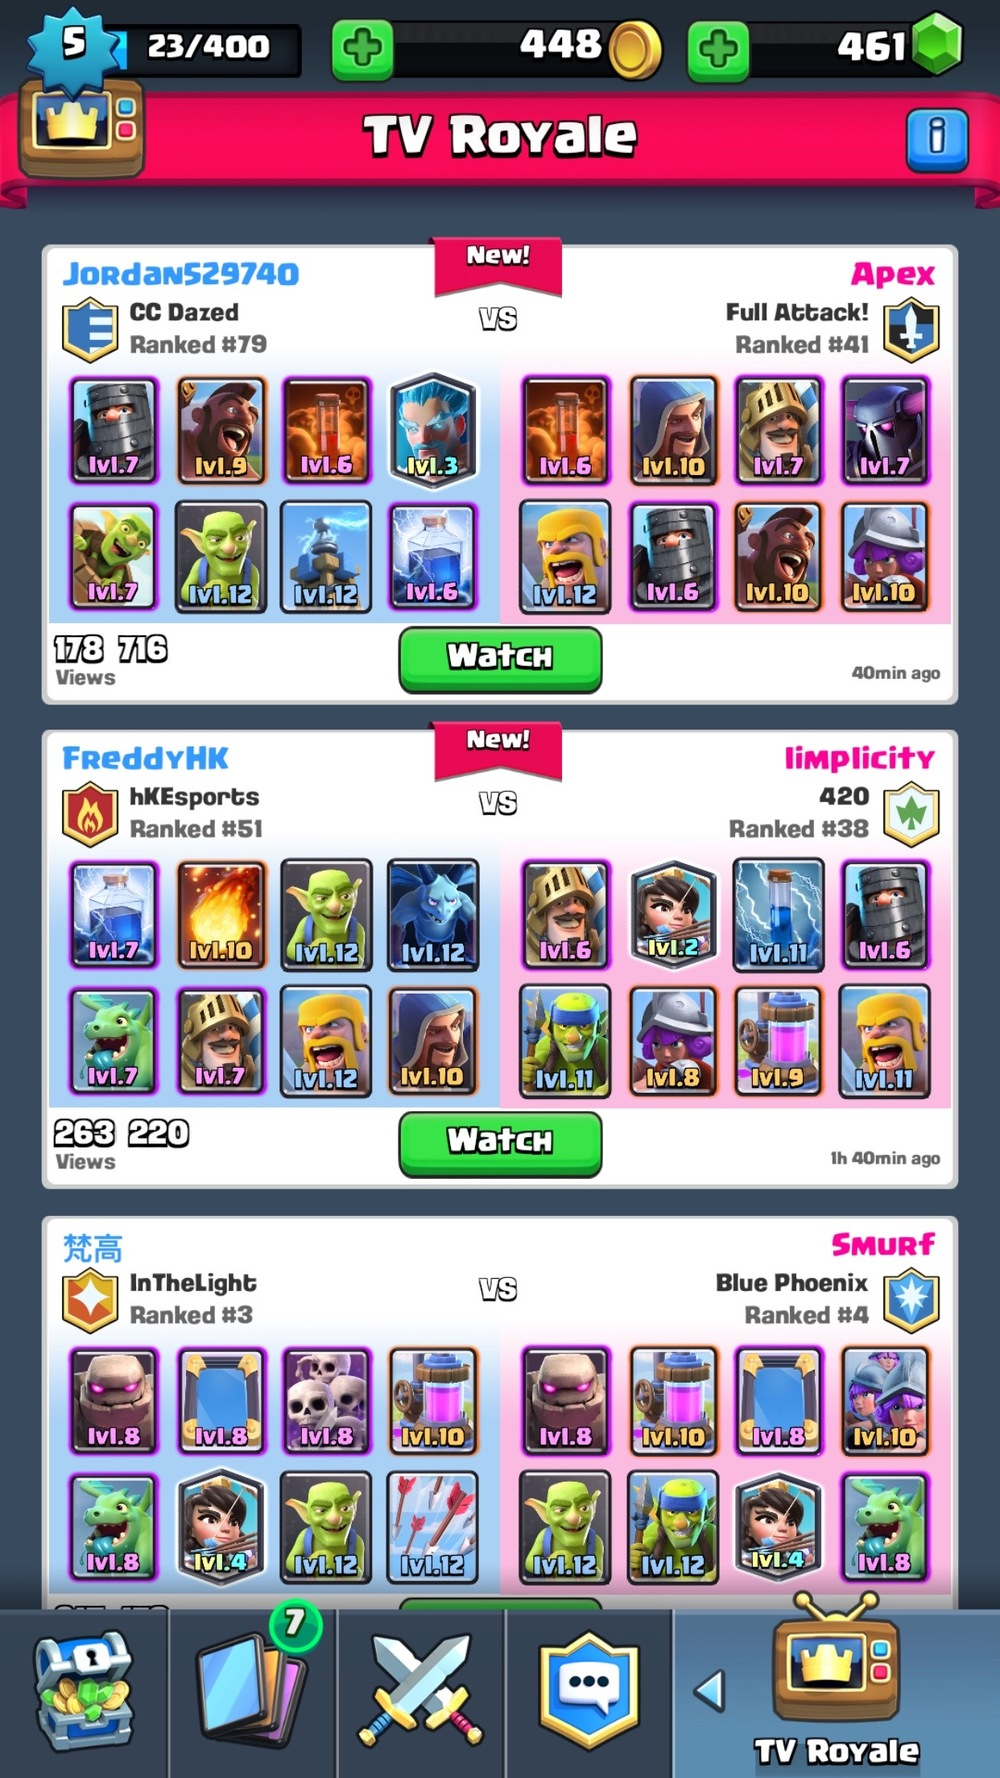 TV Royale showcases high level matches to help teach players